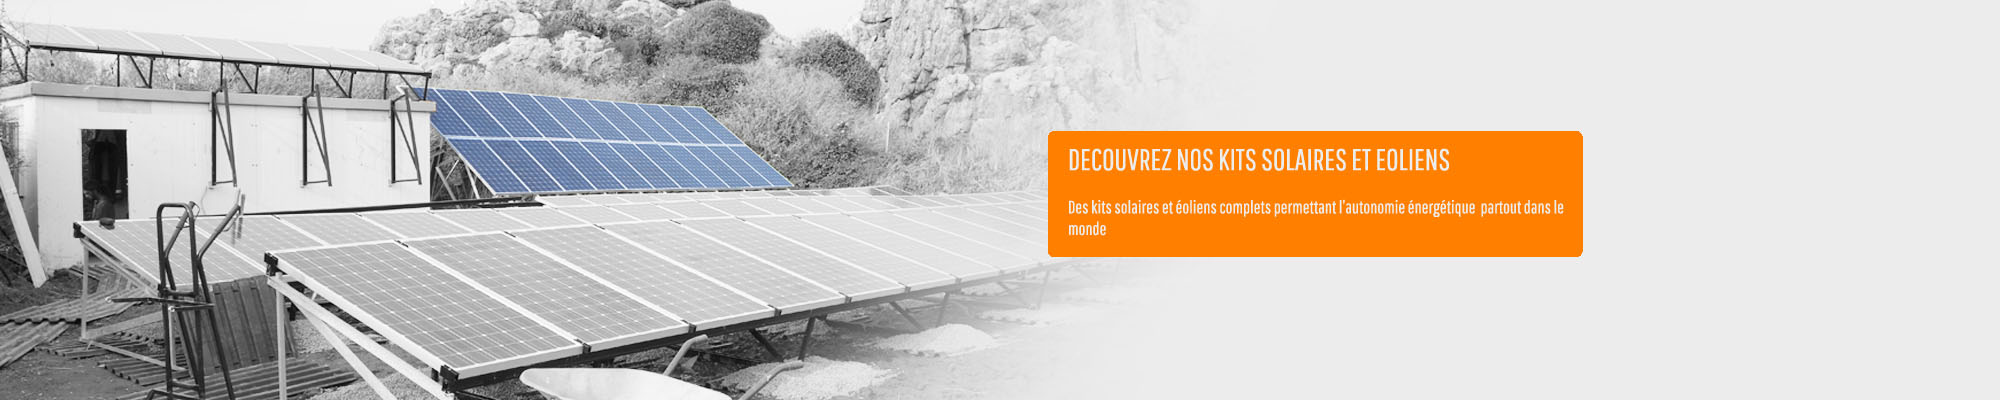 8534109Energiedouce-kits-solaires-et-eoliens-1